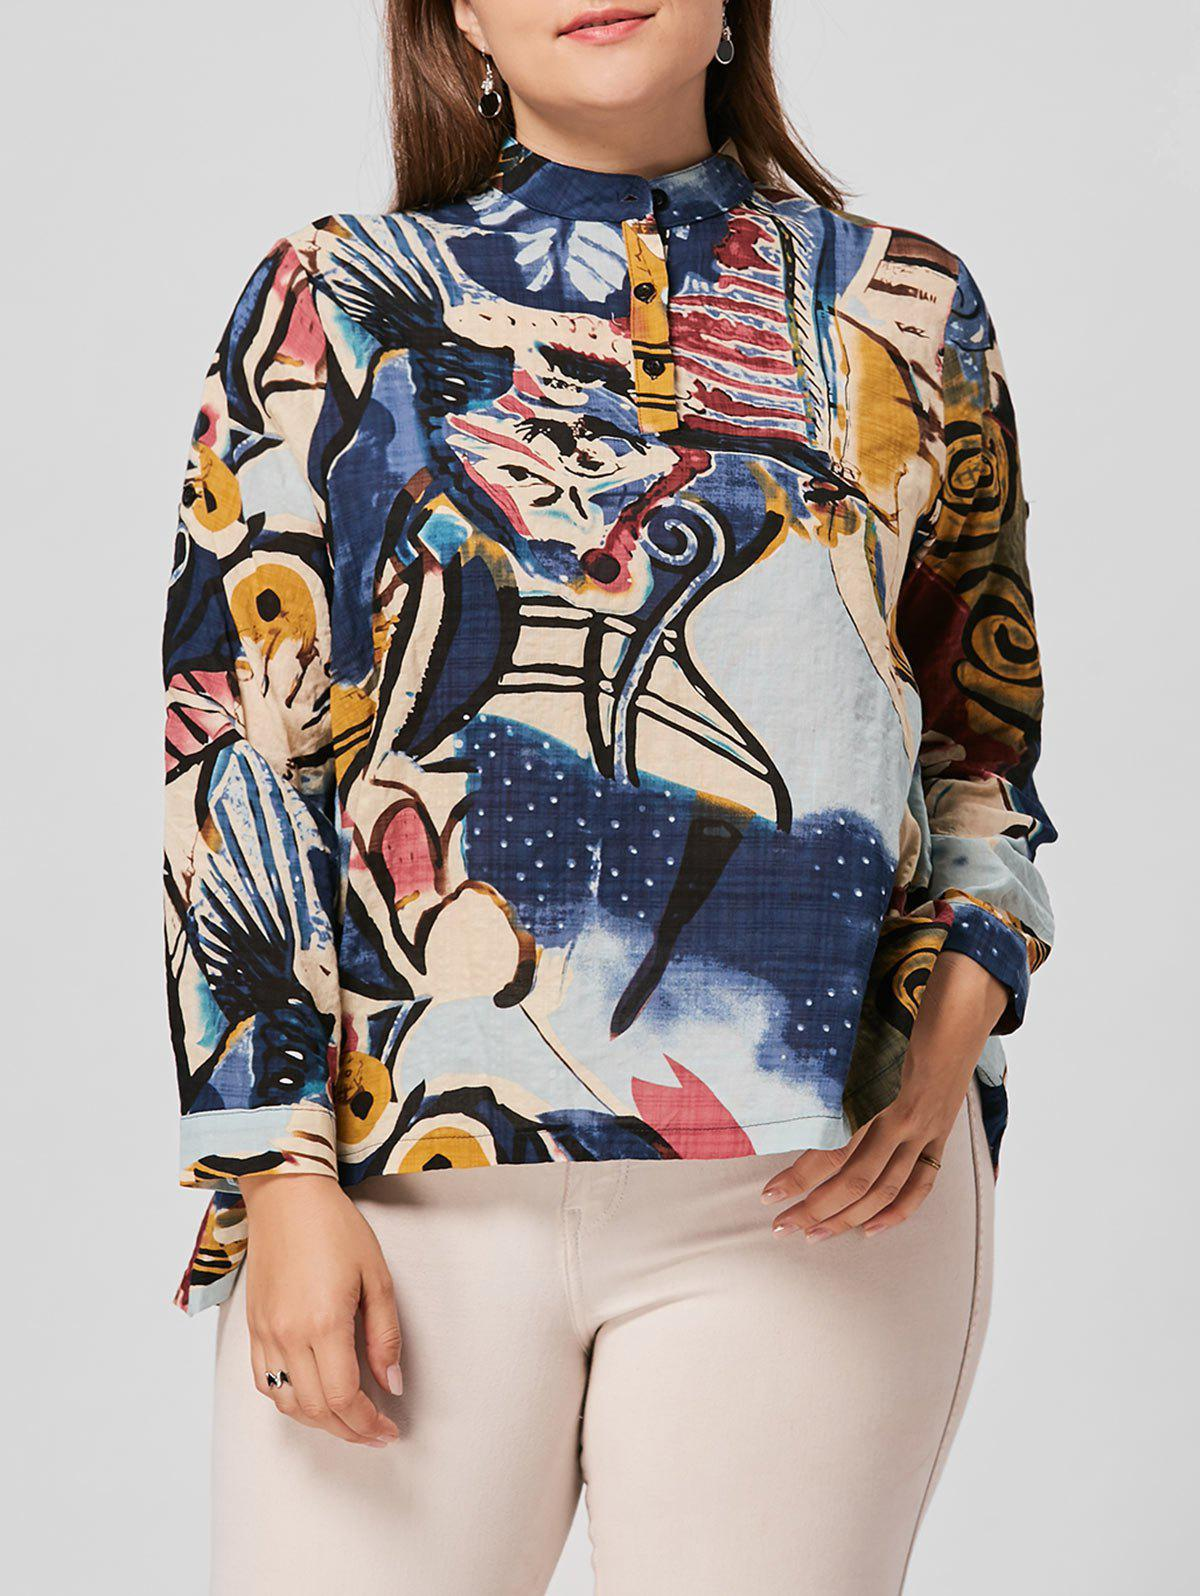 Plus Size Floral Print High Low Blouse - multicolorCOLOR 5XL